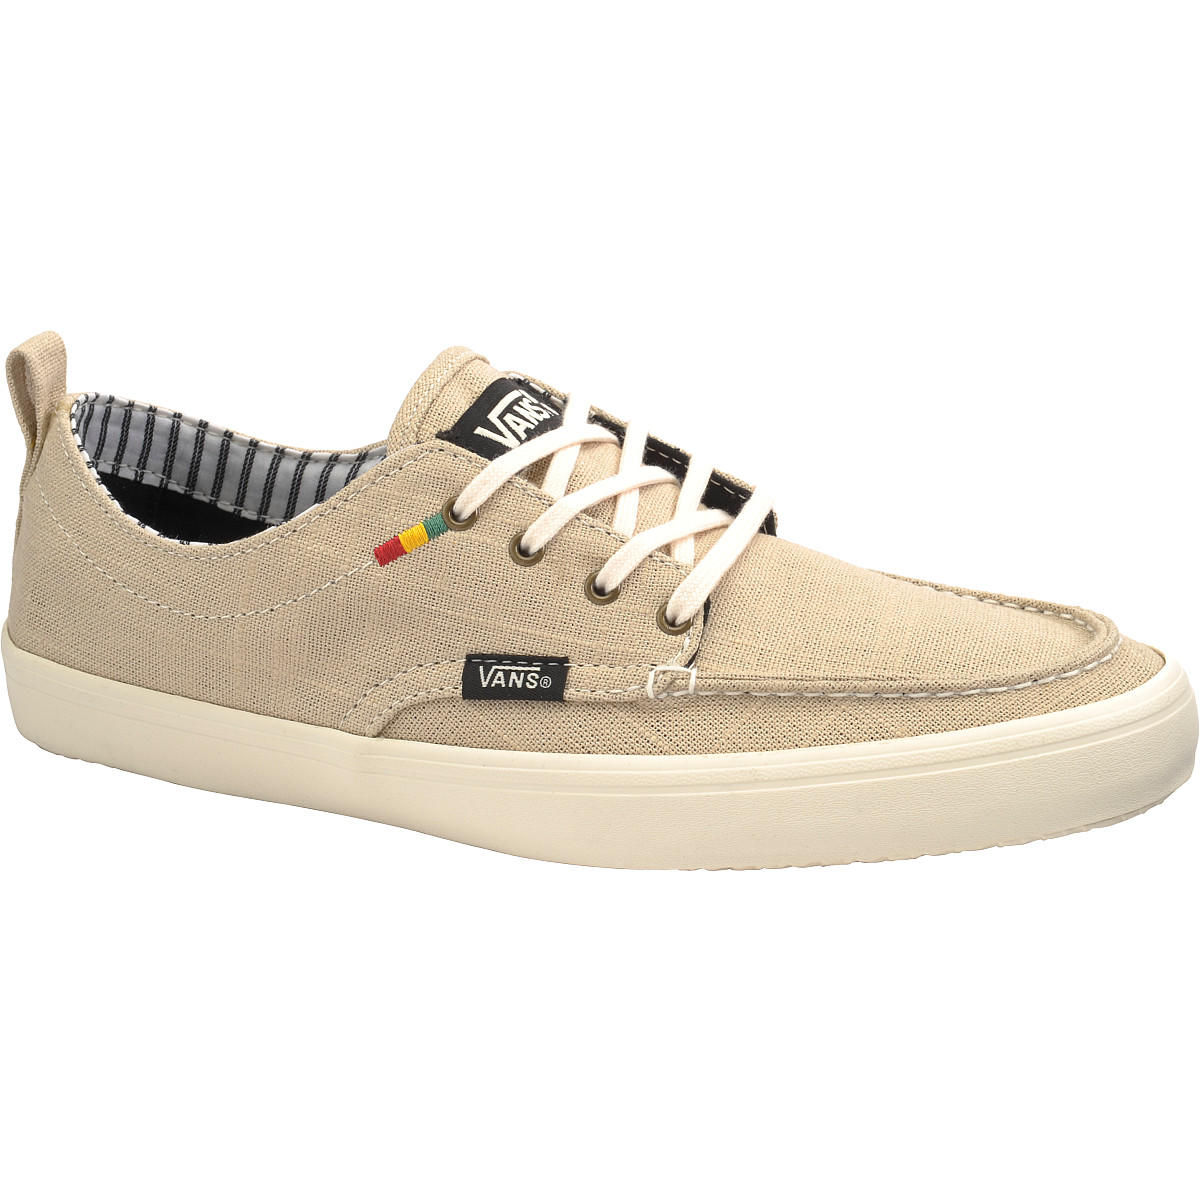 vans s millsy textile low skate shoes from sports